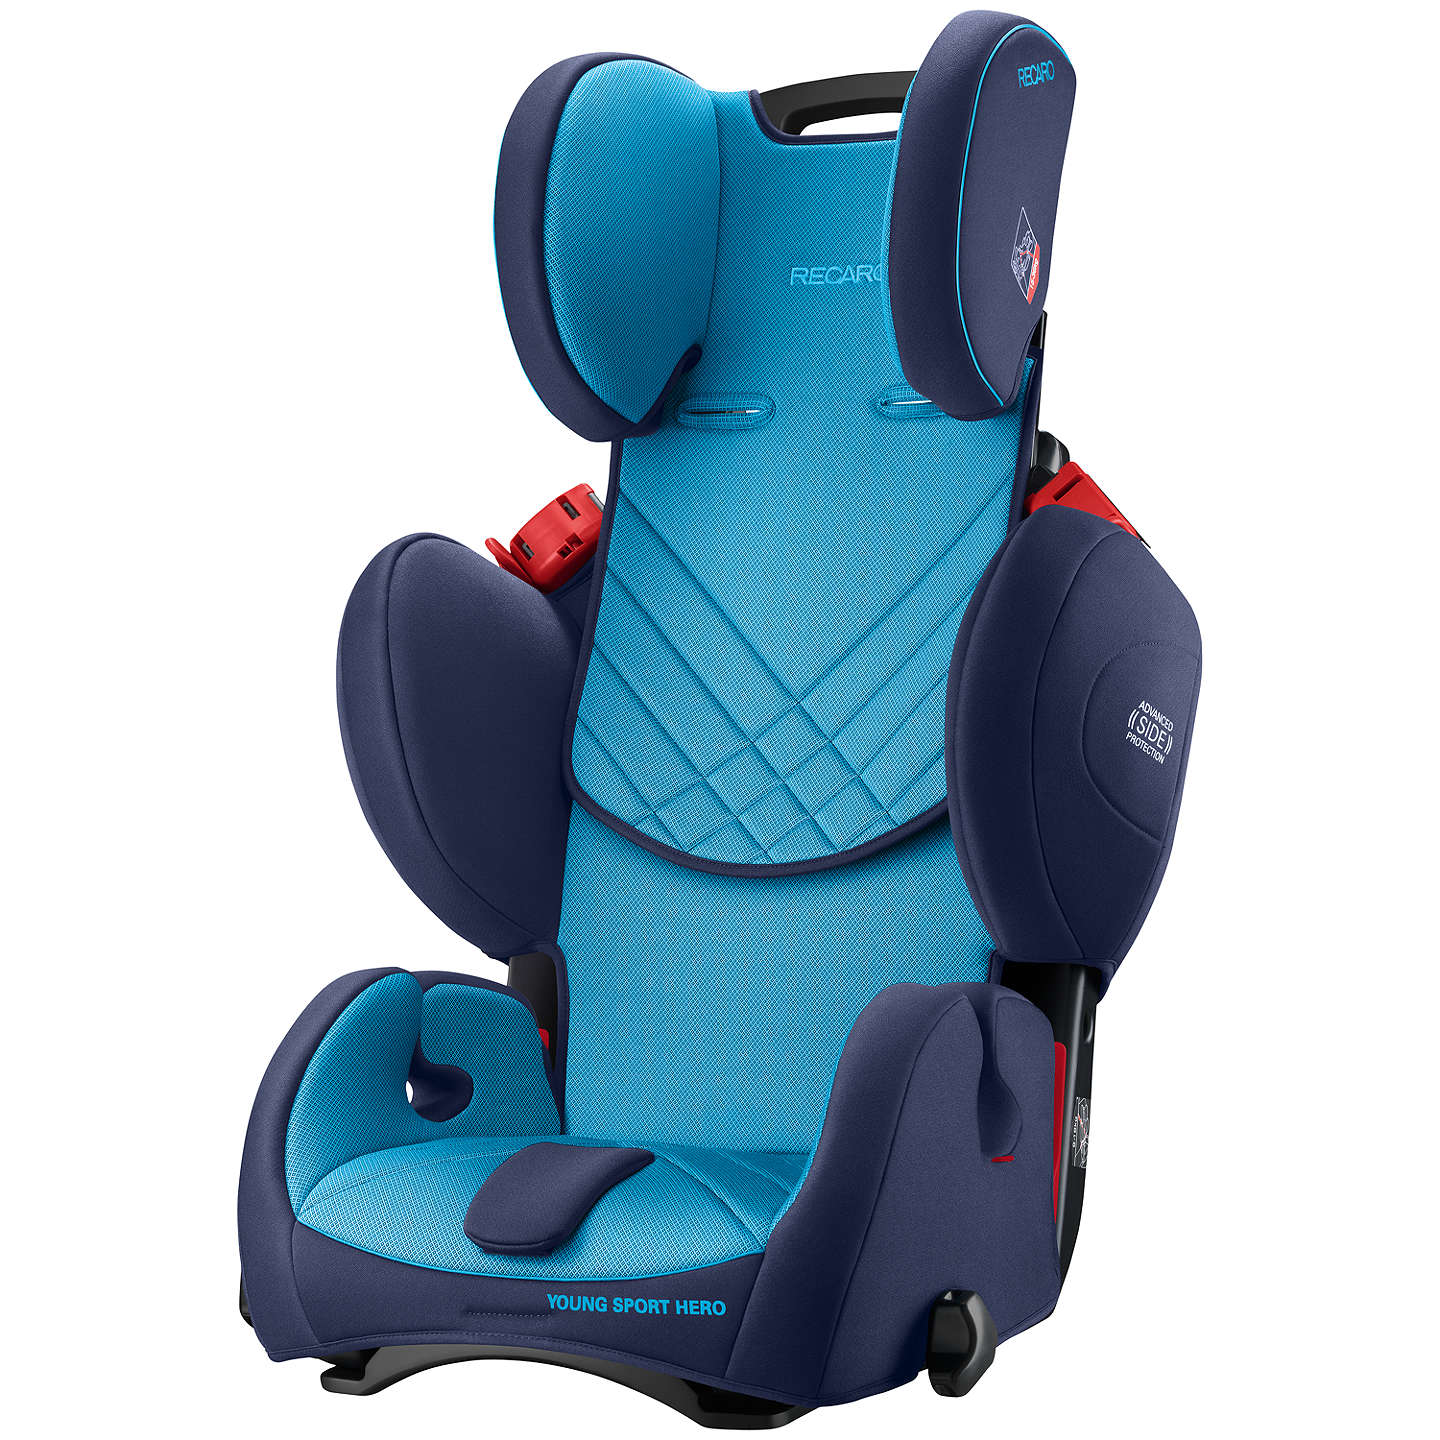 recaro young sport hero group 1 2 3 car seat xenon blue. Black Bedroom Furniture Sets. Home Design Ideas